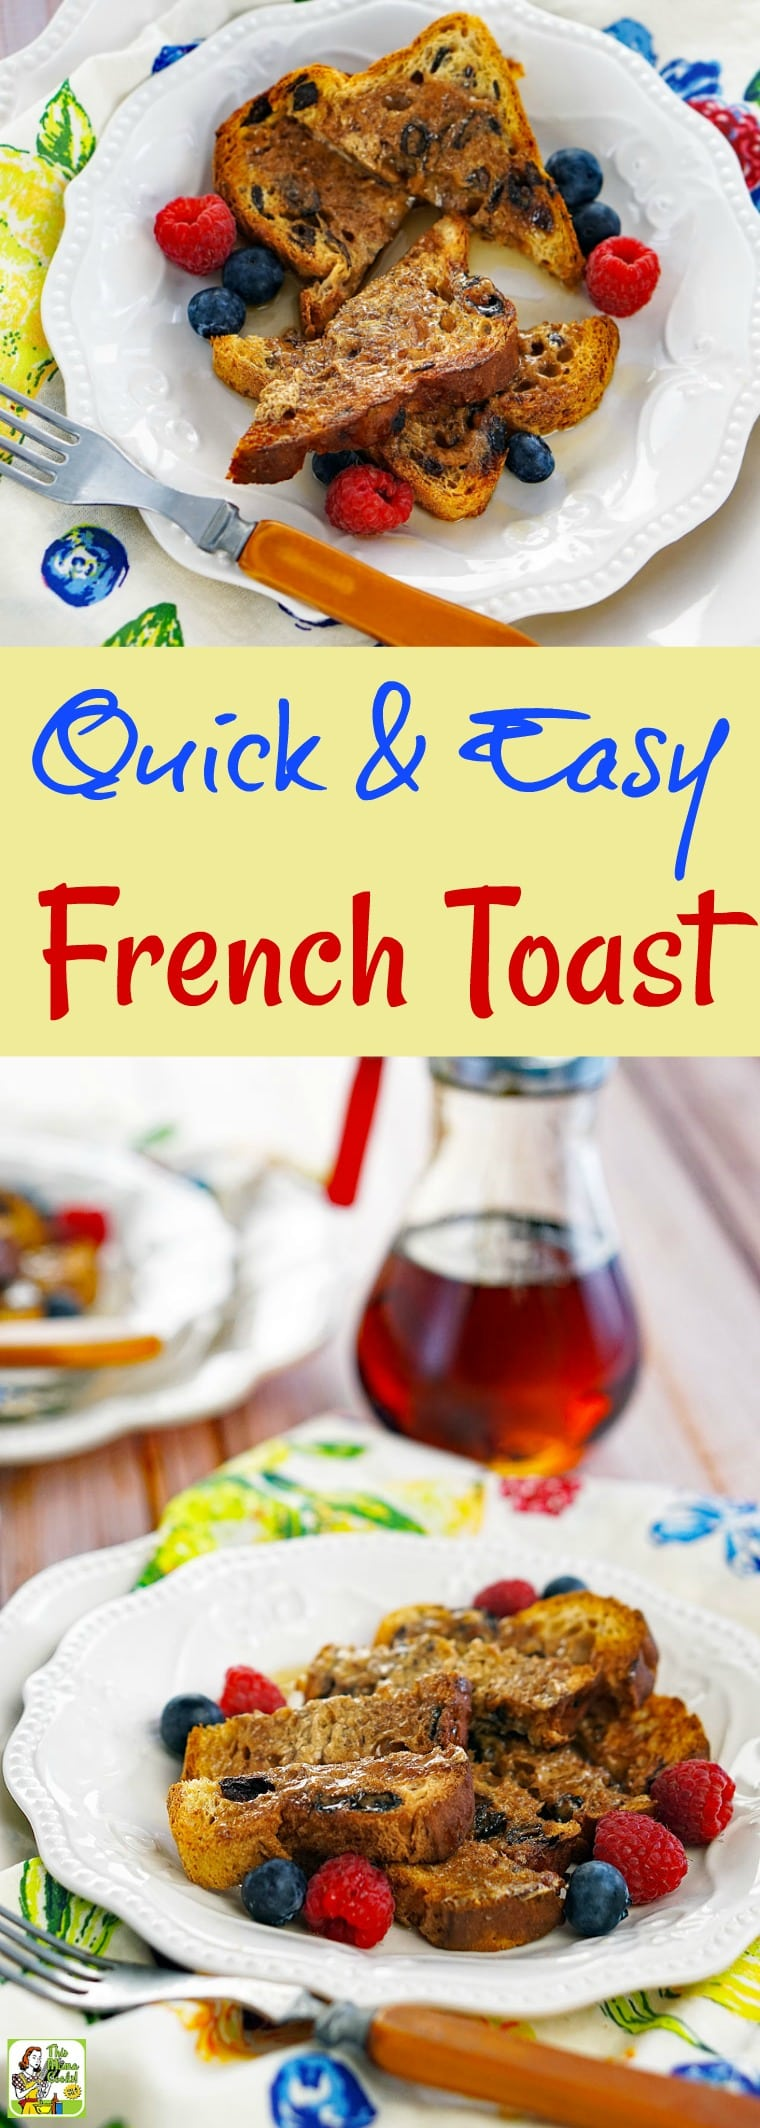 This Quick & Easy French Toast recipe is ideal for busy weekday mornings. No need for a frying pan since this no-cook, gluten-free recipe doesn't use milk or eggs. So easy that even the kids can make up a batch for breakfast or an afterschool snack. #breakfast #glutenfree #toast #snack #easy #healthy #brunch #nocook